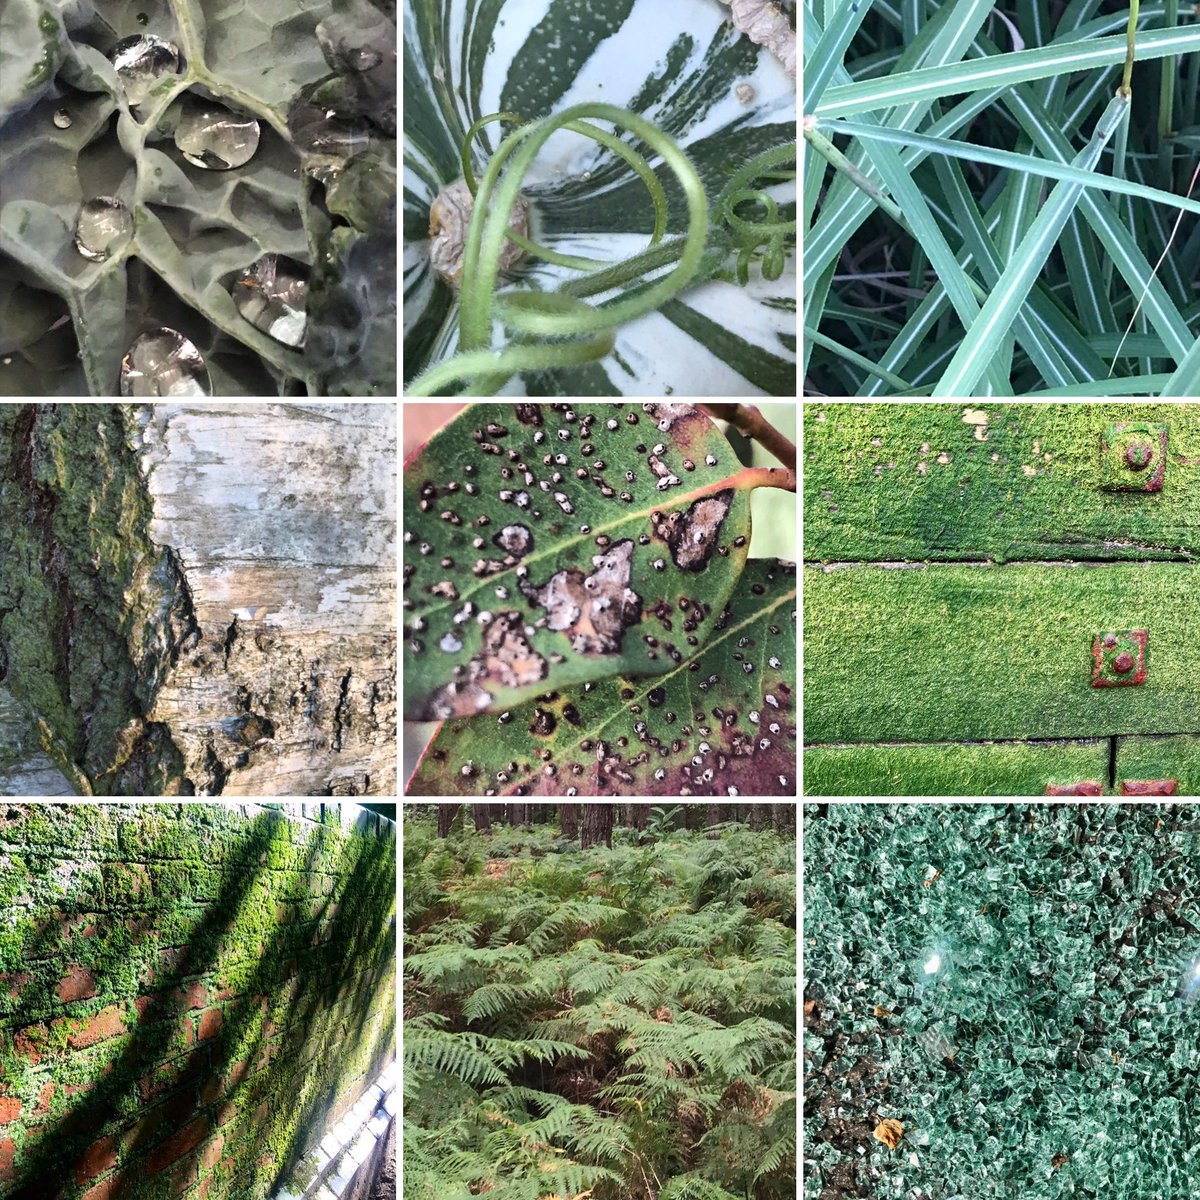 Friends, it's almost a year of the #pandemic, & my #texturehuntergatherer began 12 March 2020, a creative refocus & simple to do. Join in! Find a fascination for colours & textures wherever you are. Slow thoughts & find solidarity in minutiae #mentalhealth #anxiety #wellbeing